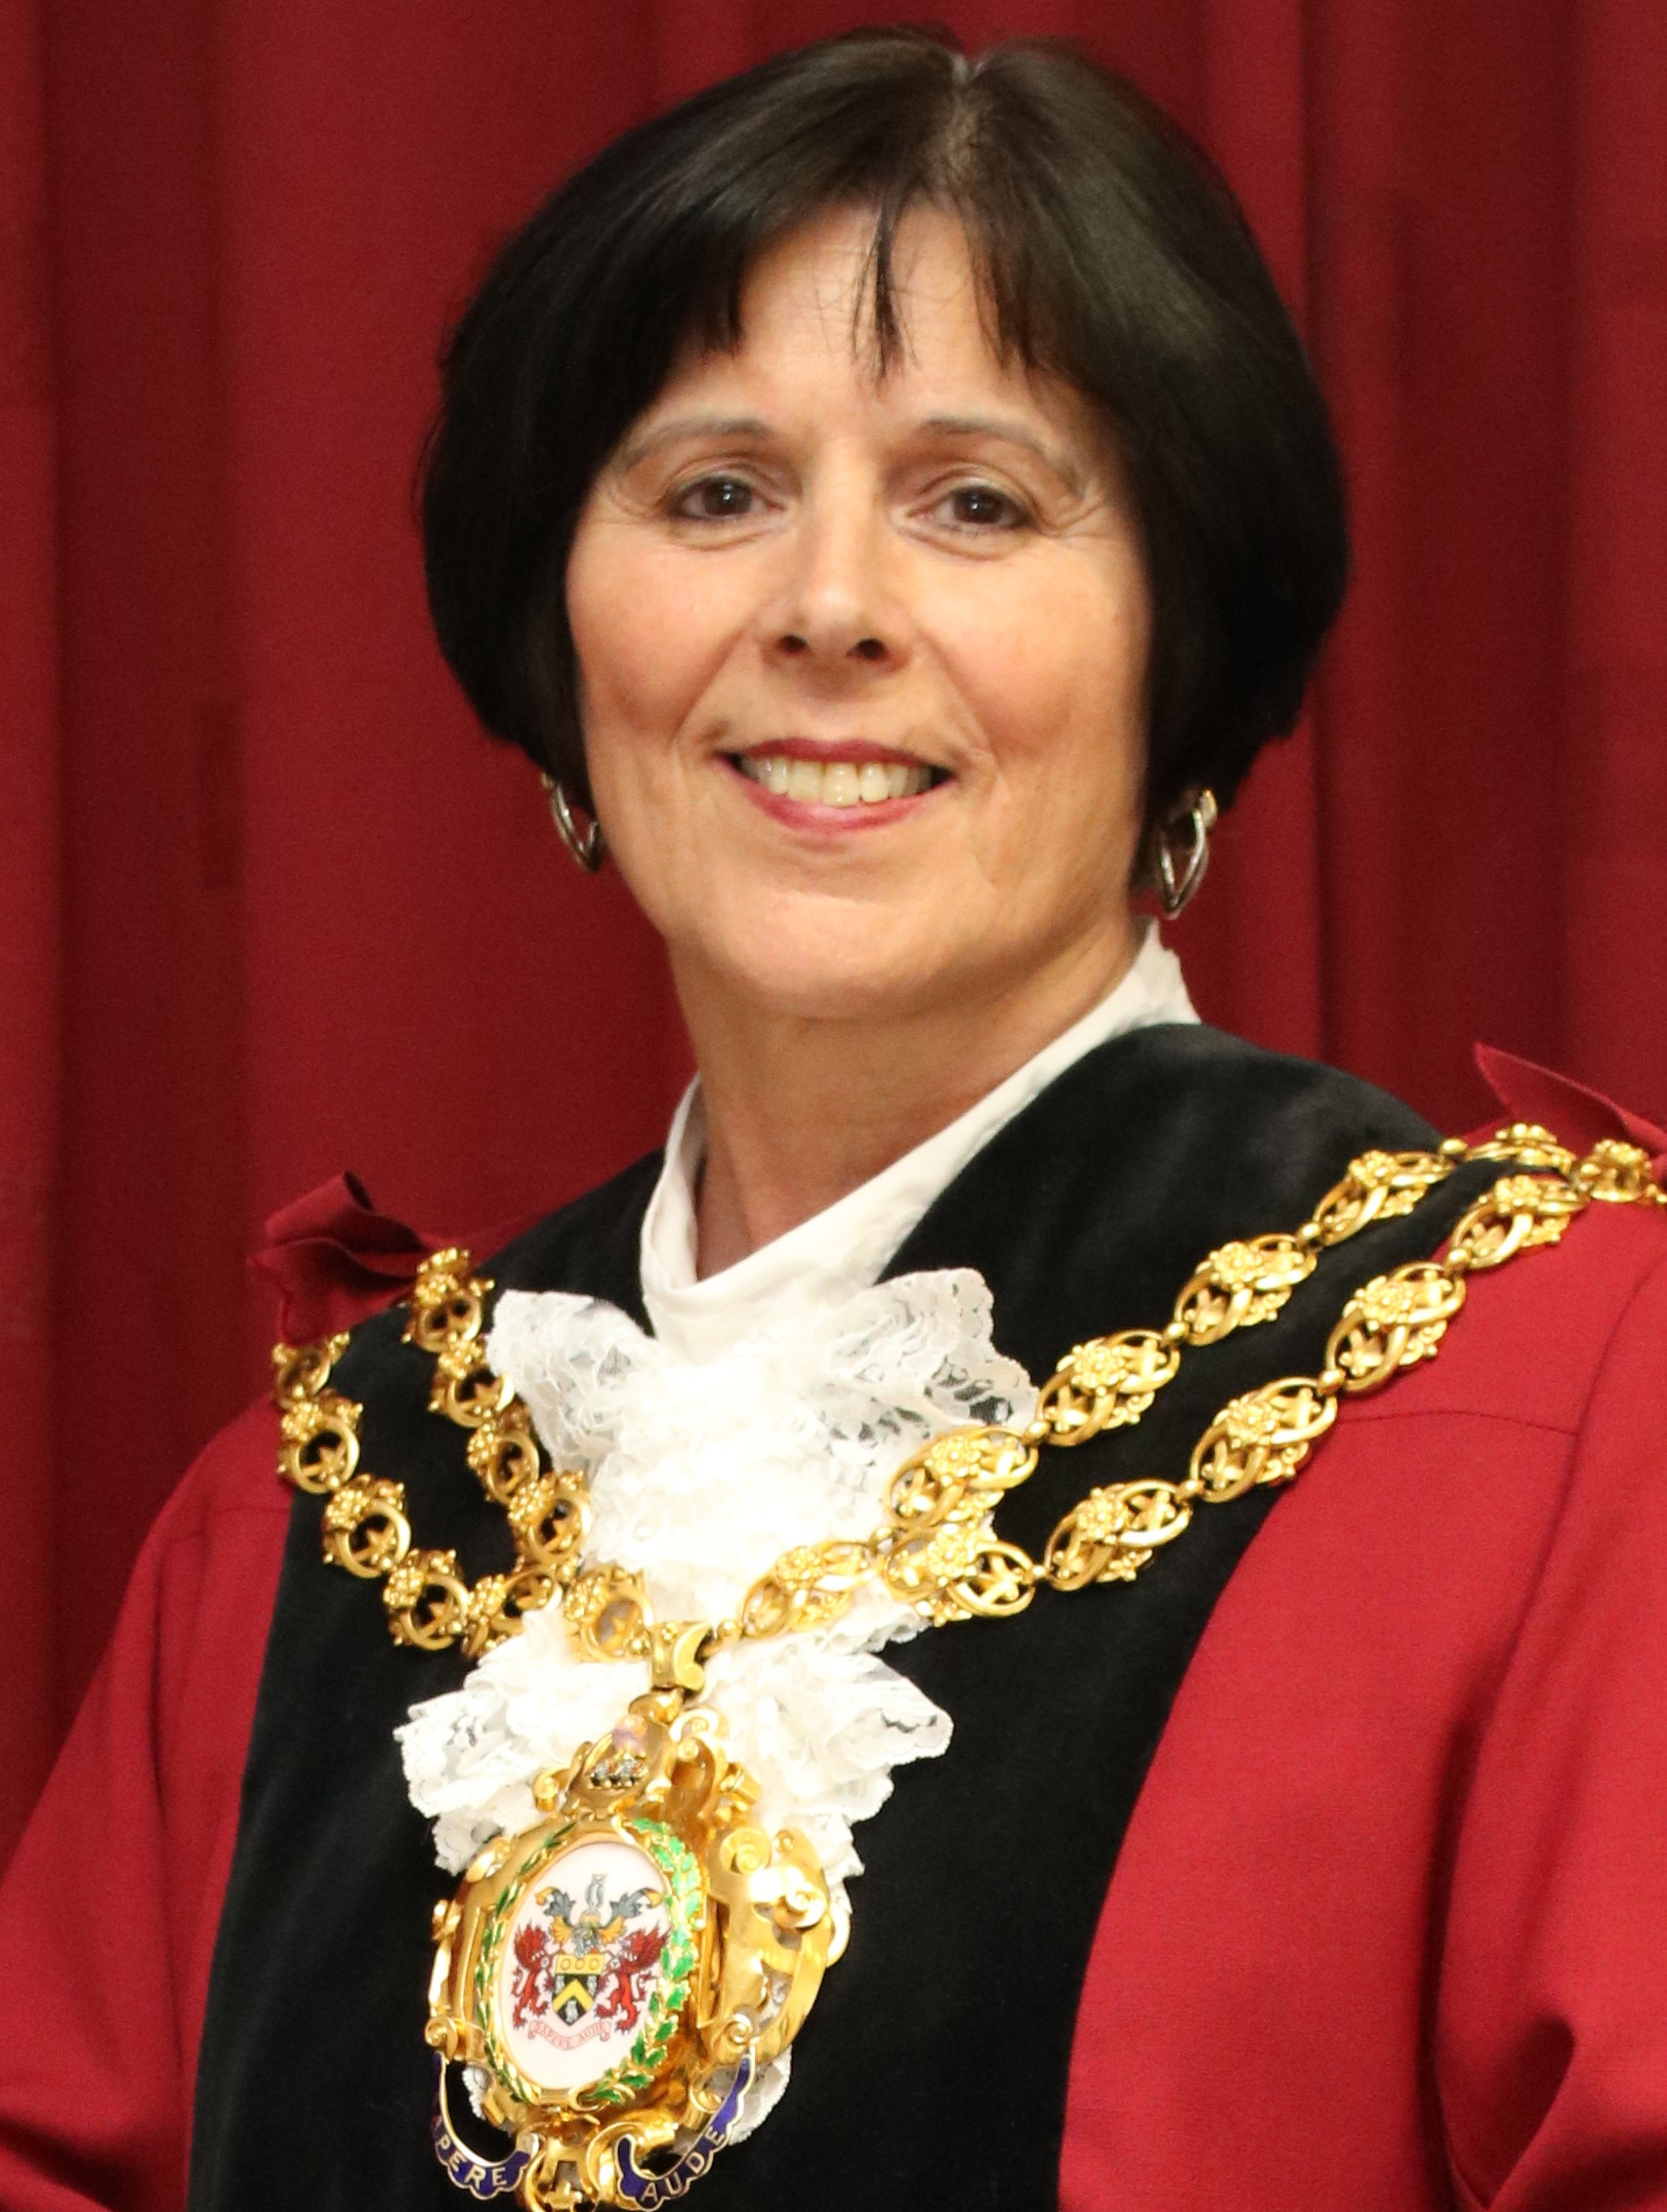 The Mayor of Oldham